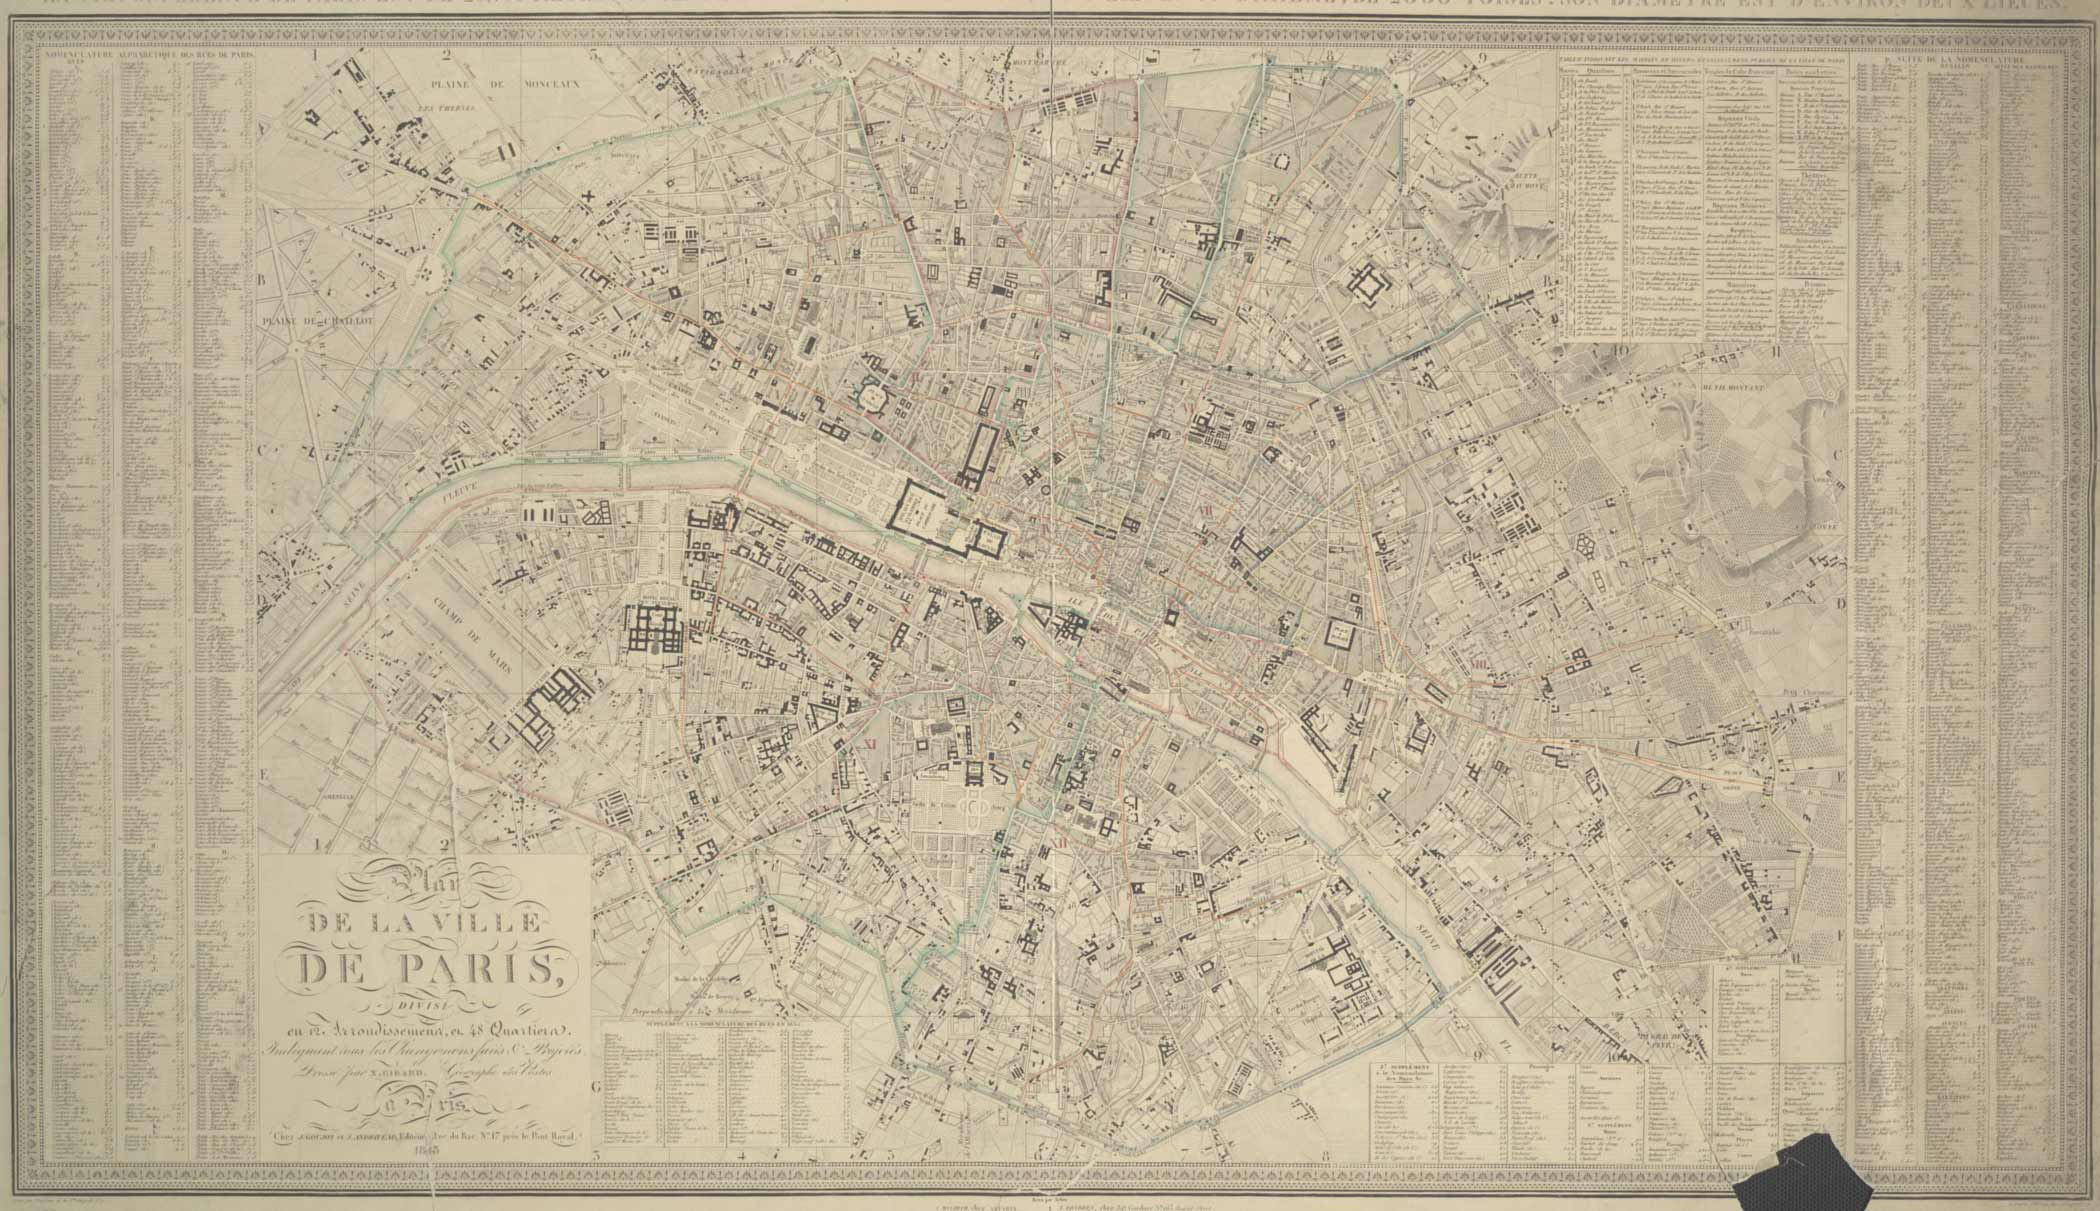 Map of Paris 1843 Pari000126